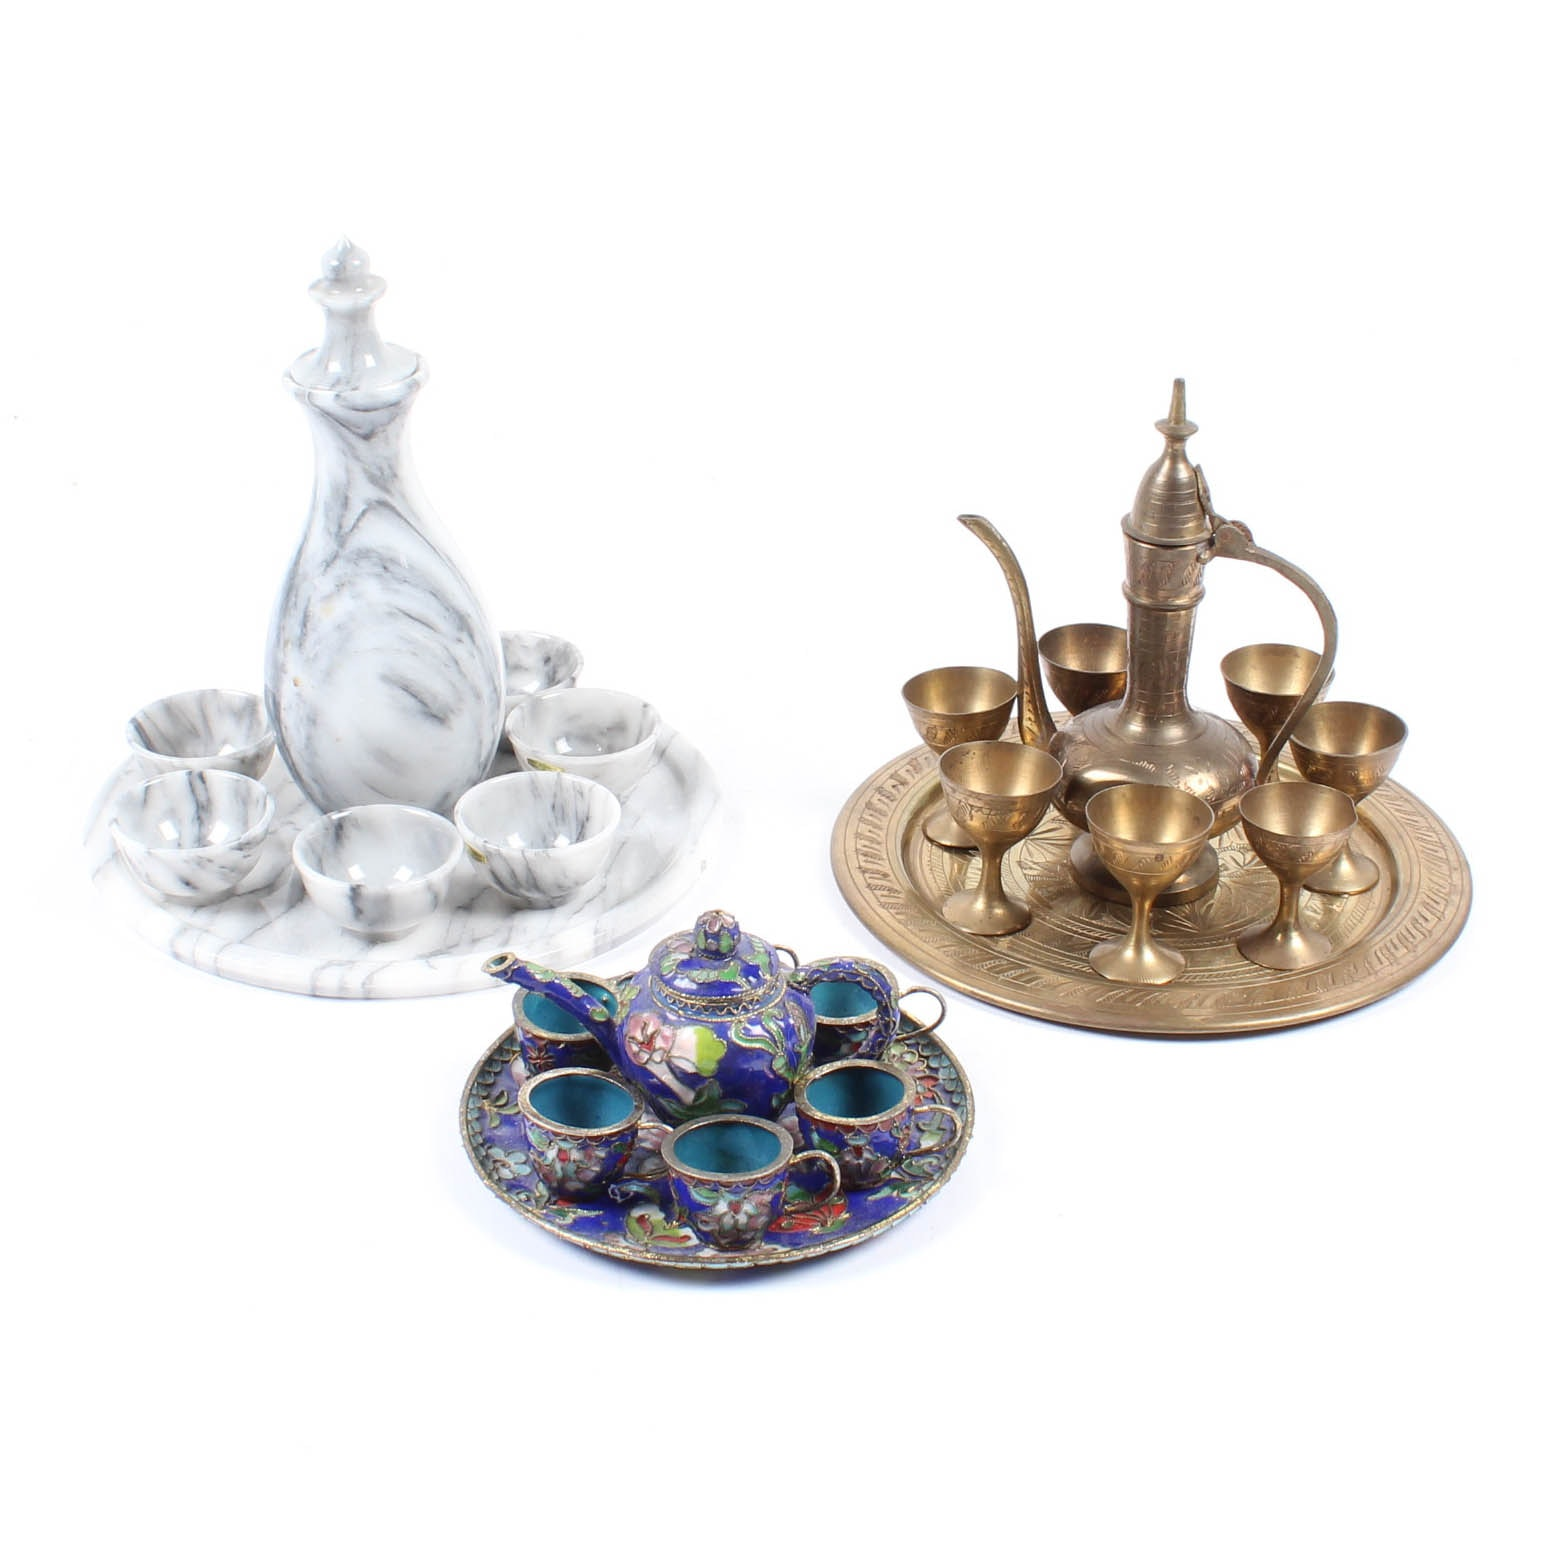 Marble, Brass and Cloisonne Beverage Service Sets